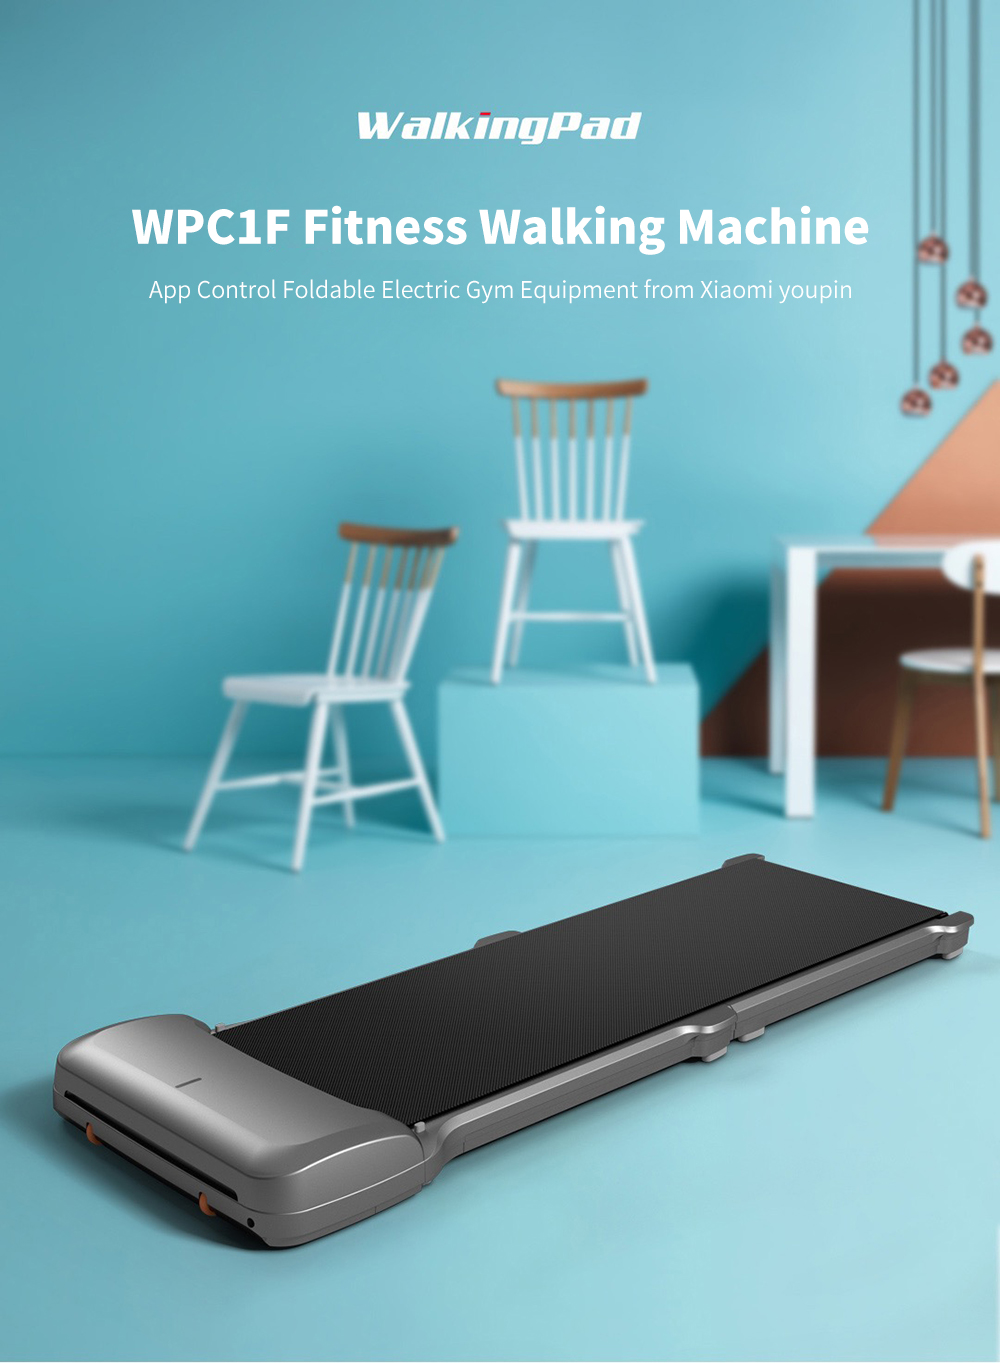 WalkingPad C1 Fitness Walking Machine App Control Foldable Electric Gym Equipment-グレー